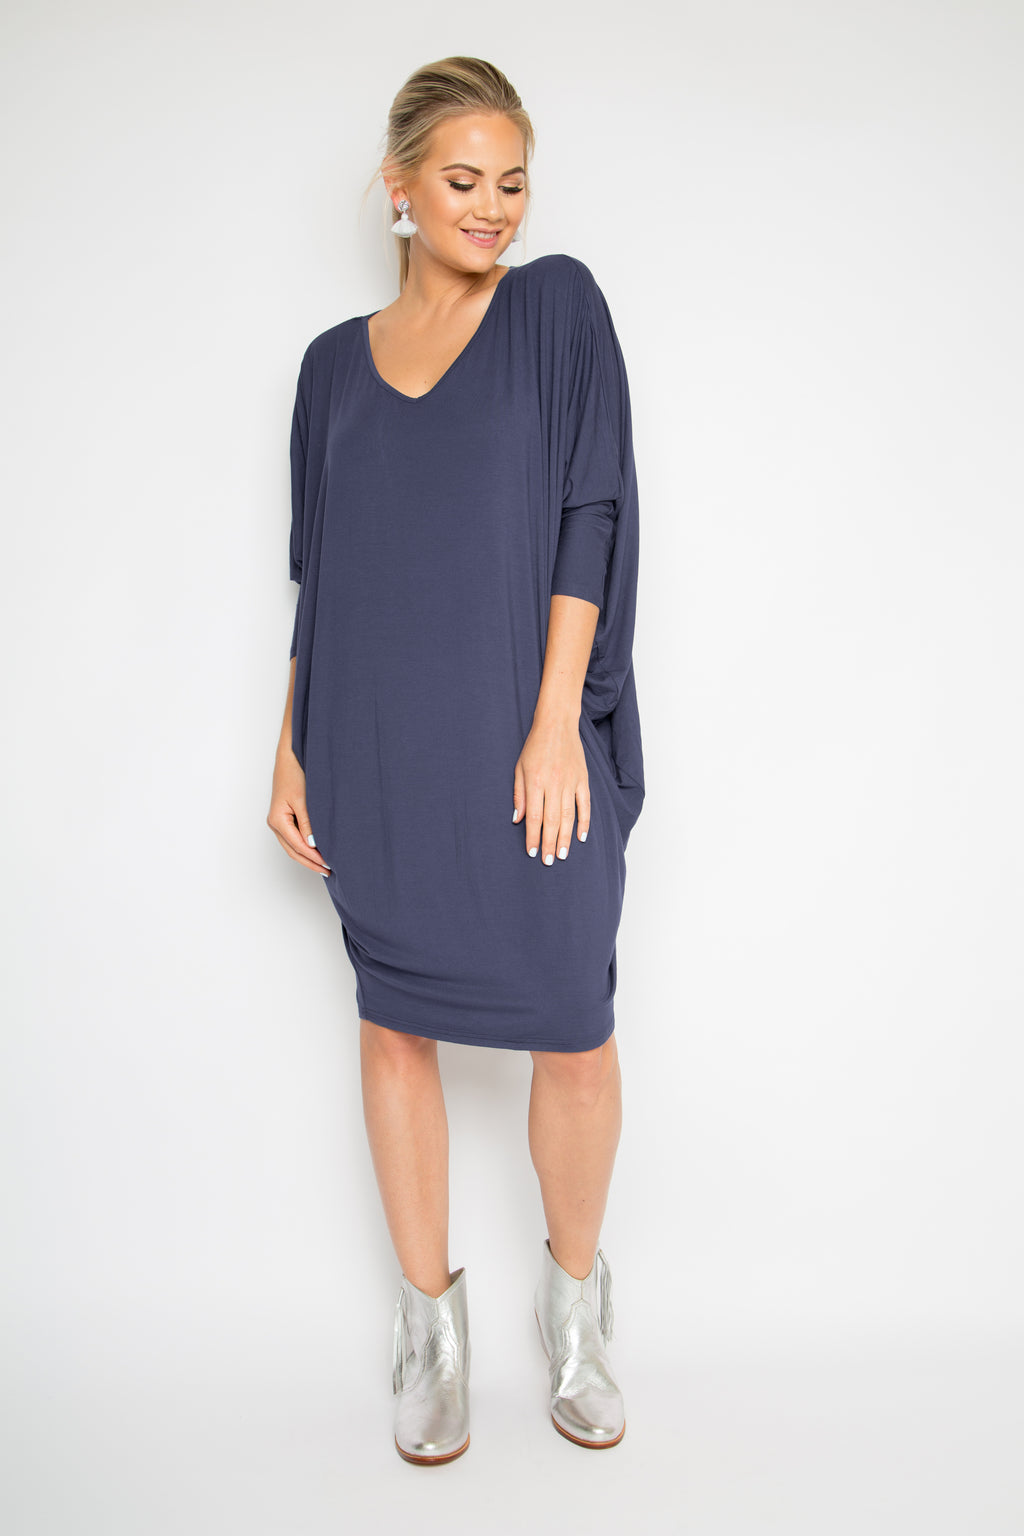 Bamboo Long Sleeve Miracle Dress in Navy